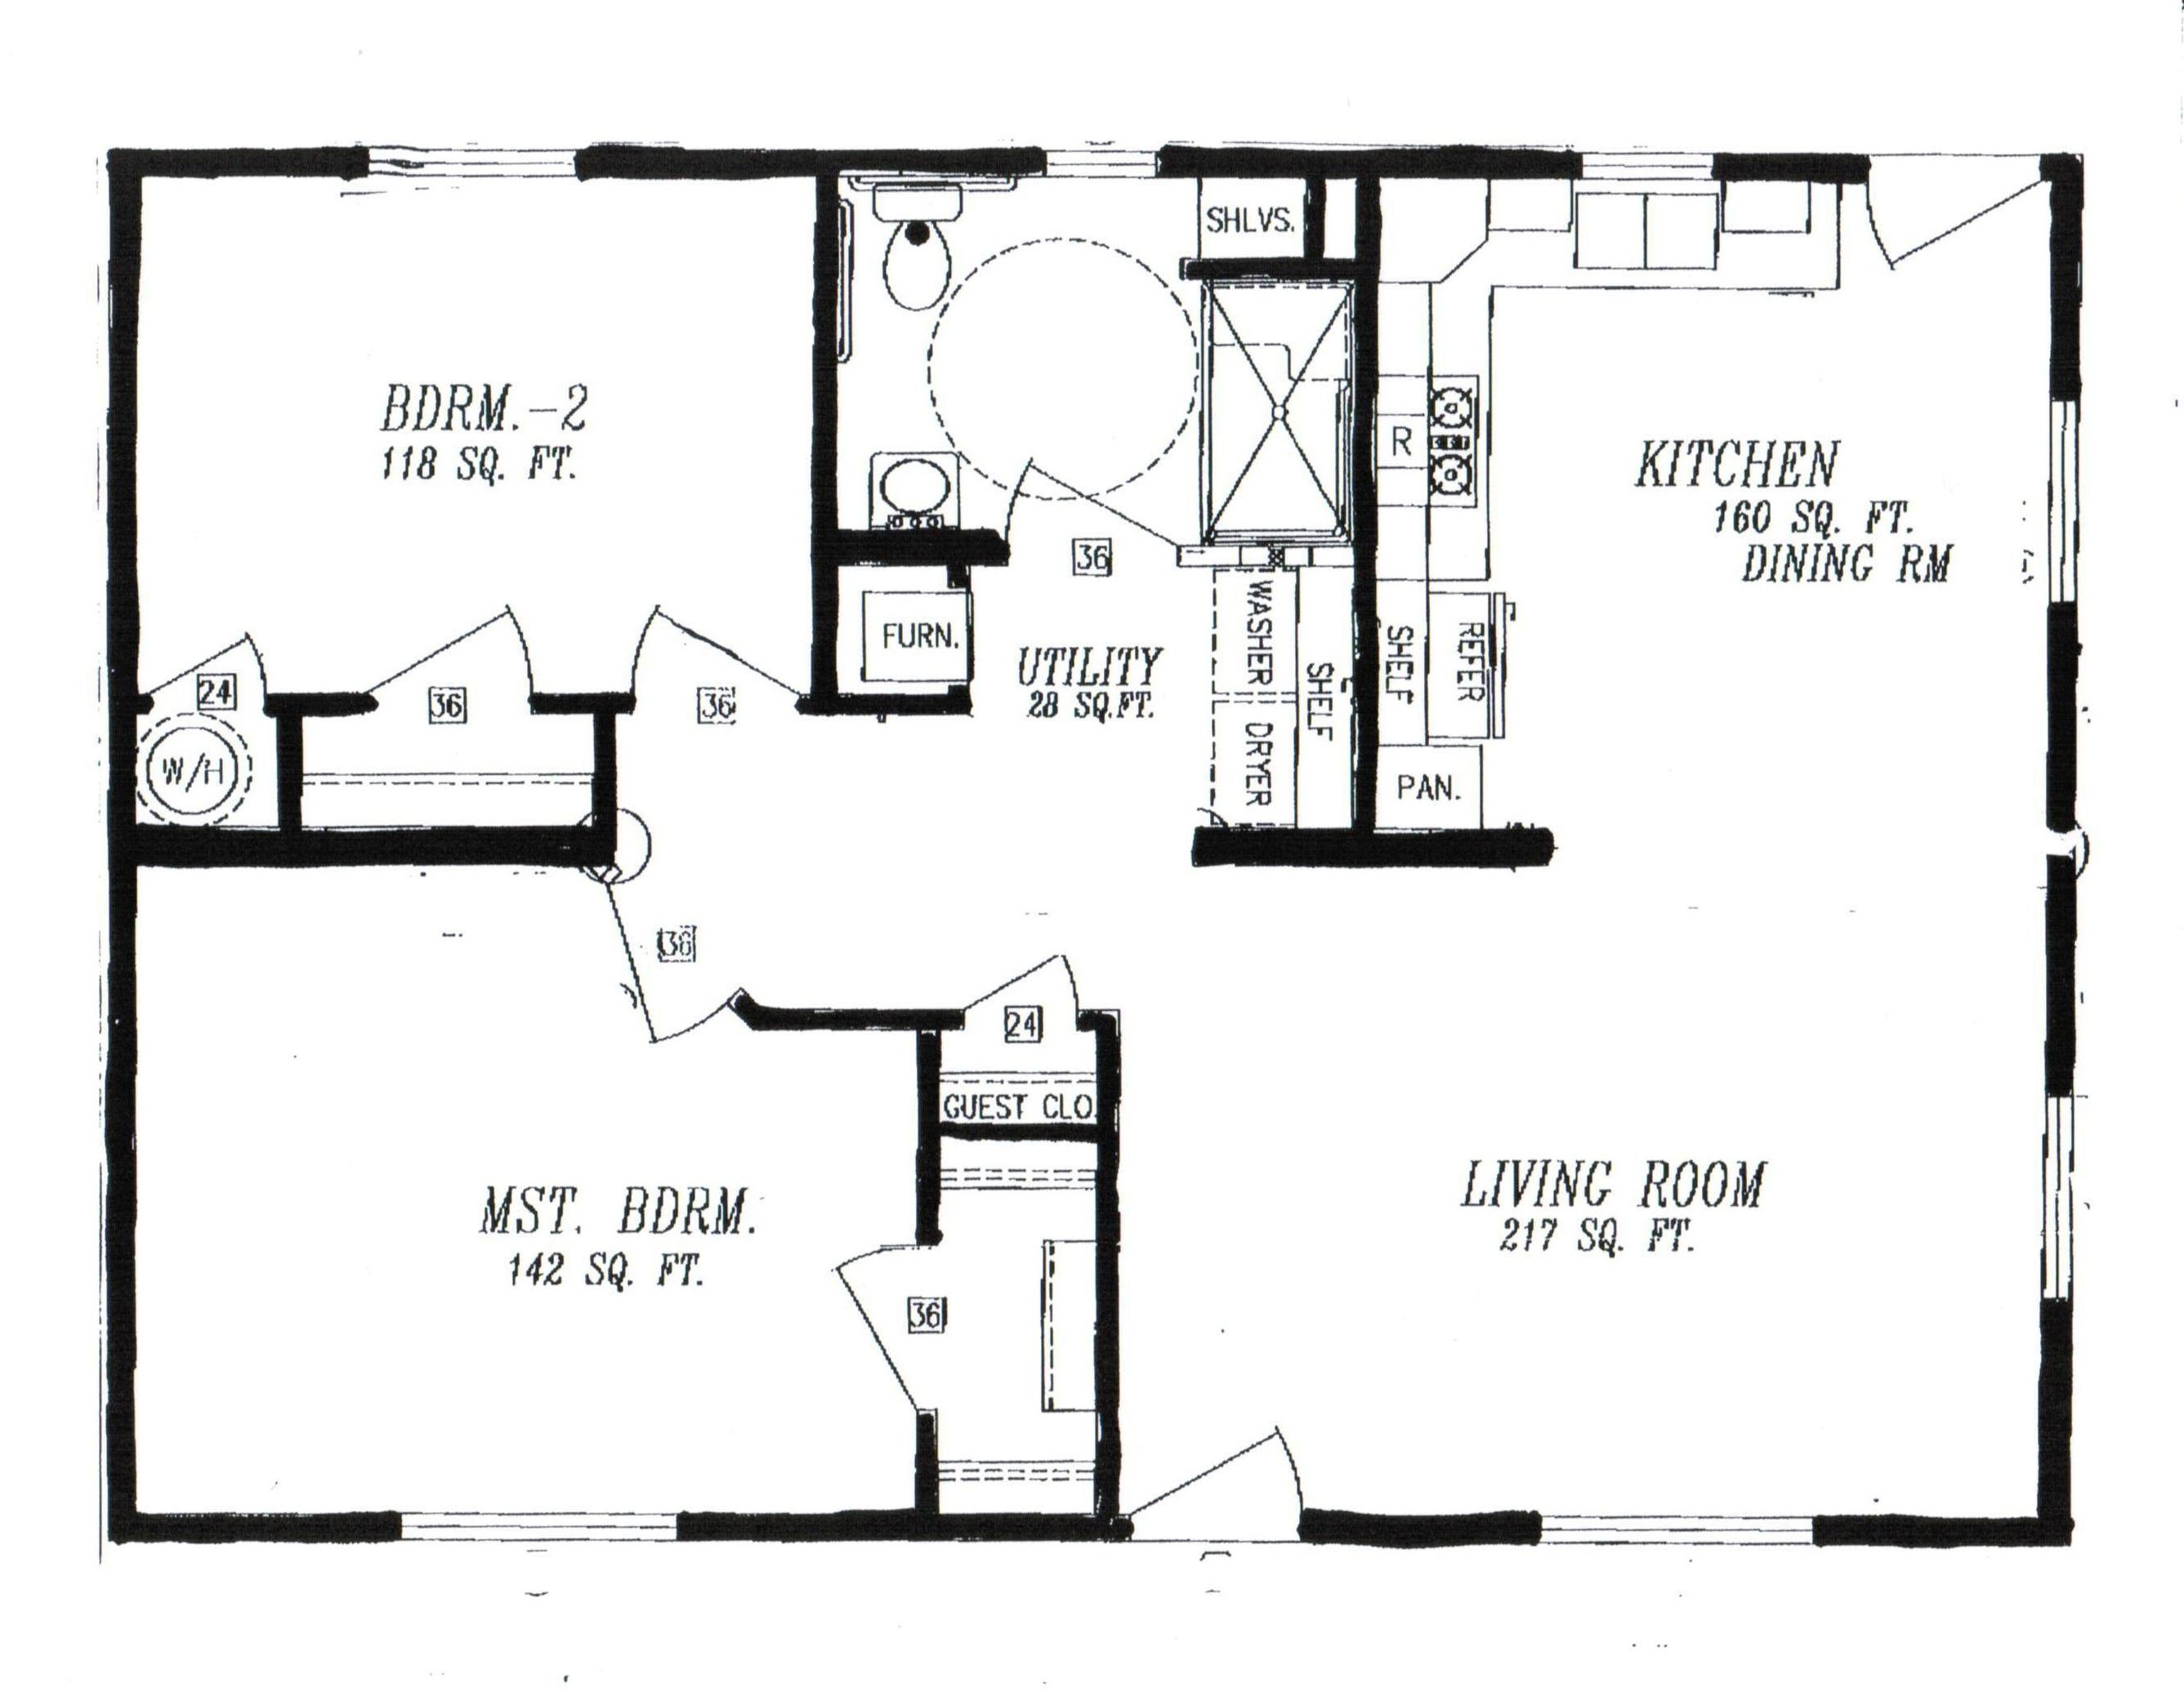 Ada Bathroom Floor Plans For Accessible Bathroom With Ada Residential Guidelines Requirement